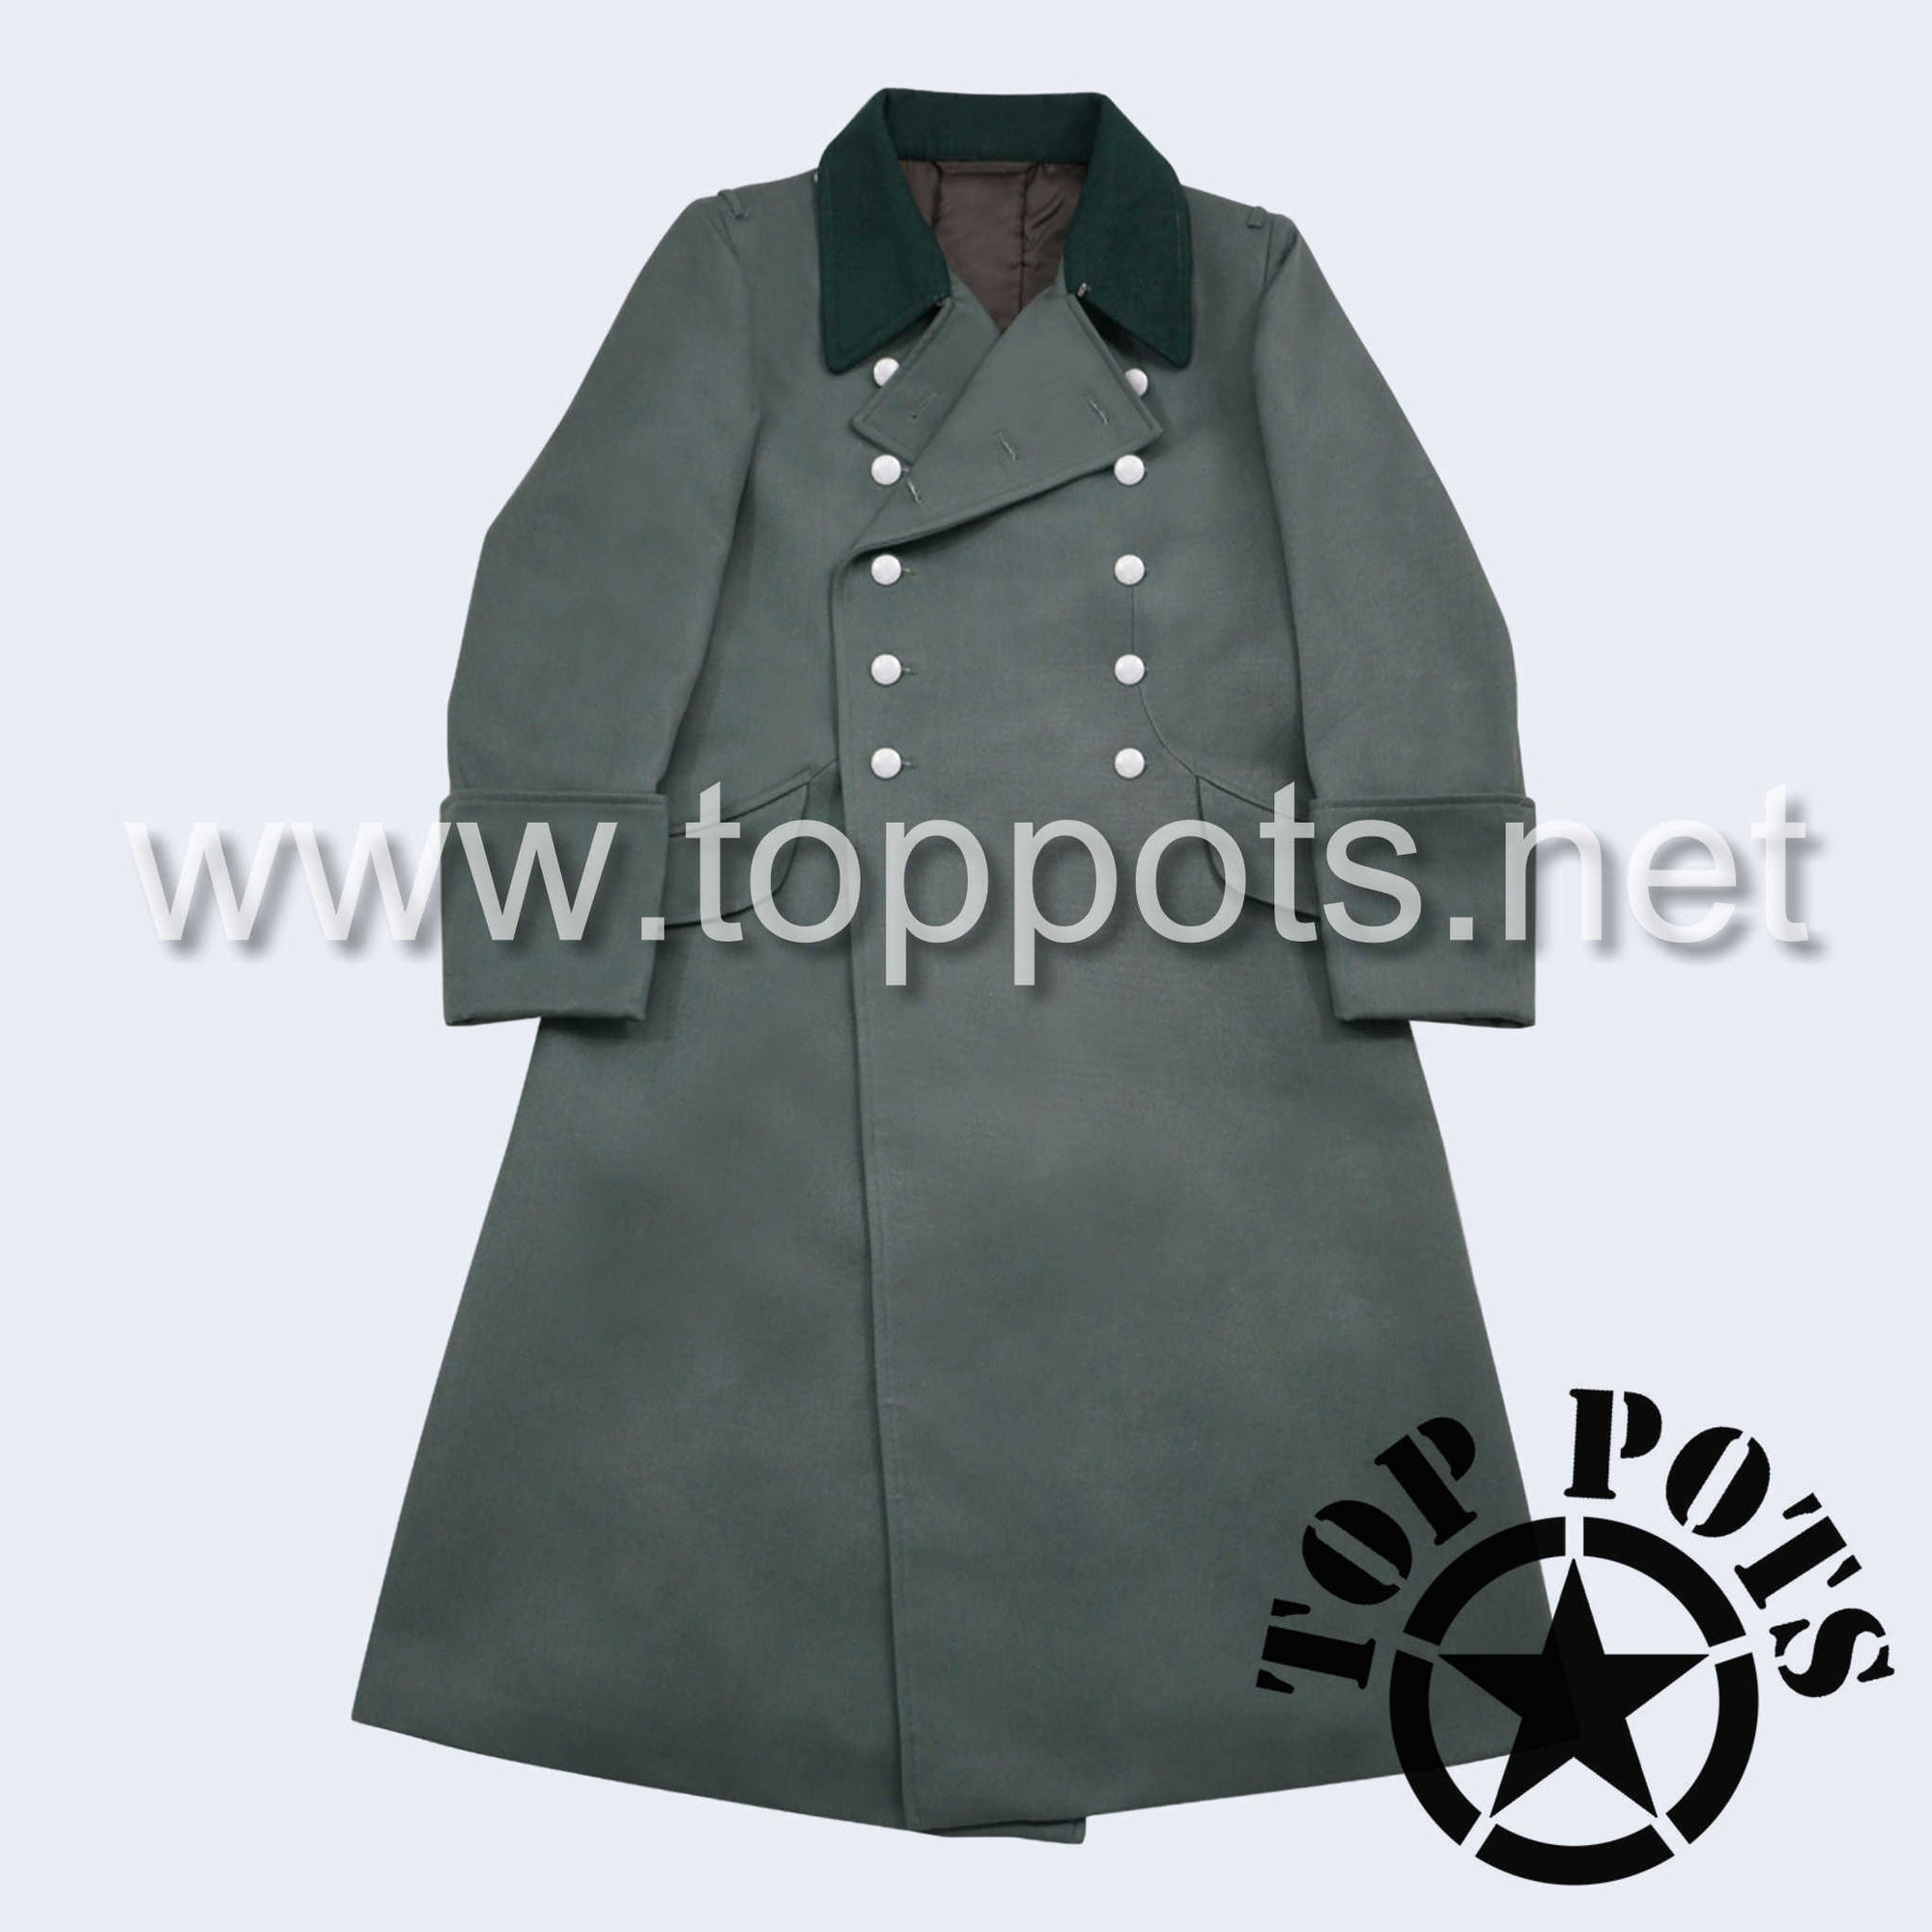 WWII German Army M1940 Waffen SS Uniform Overcoat Greatcoat Winter Jacket Field Grey Gabardine - Officer